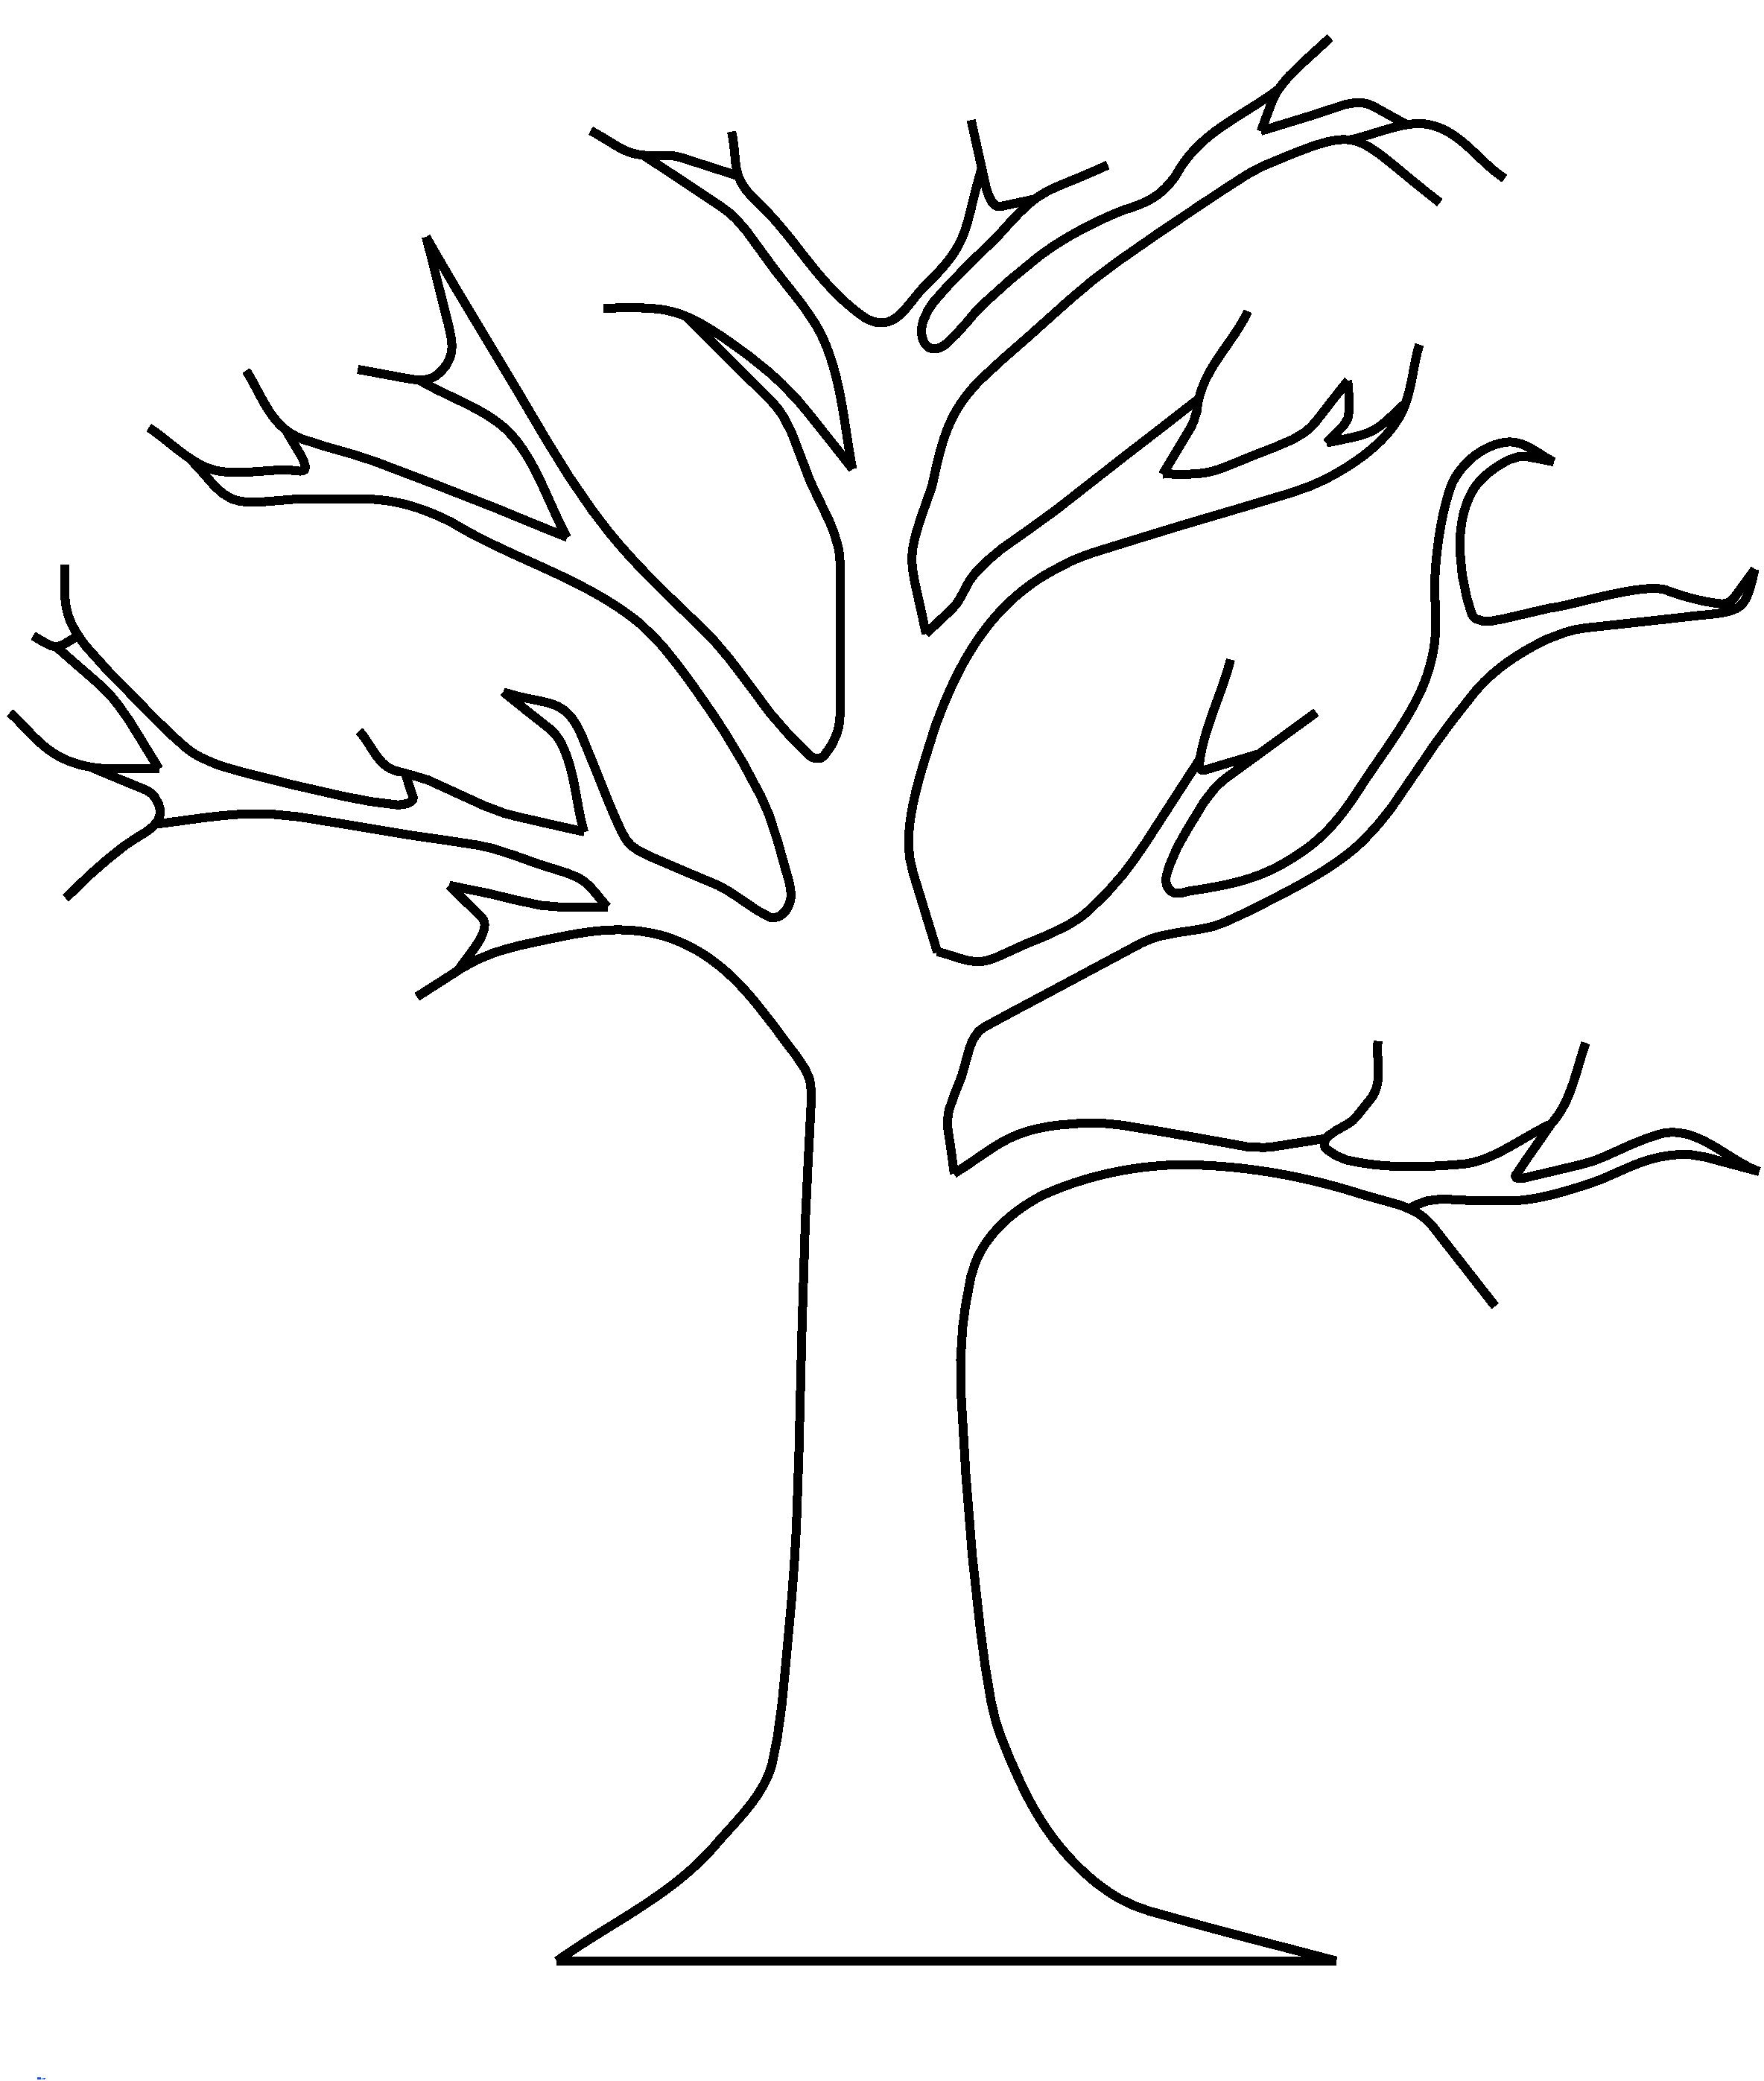 Apple Tree Template Dgn Apple Tree Without Leaves